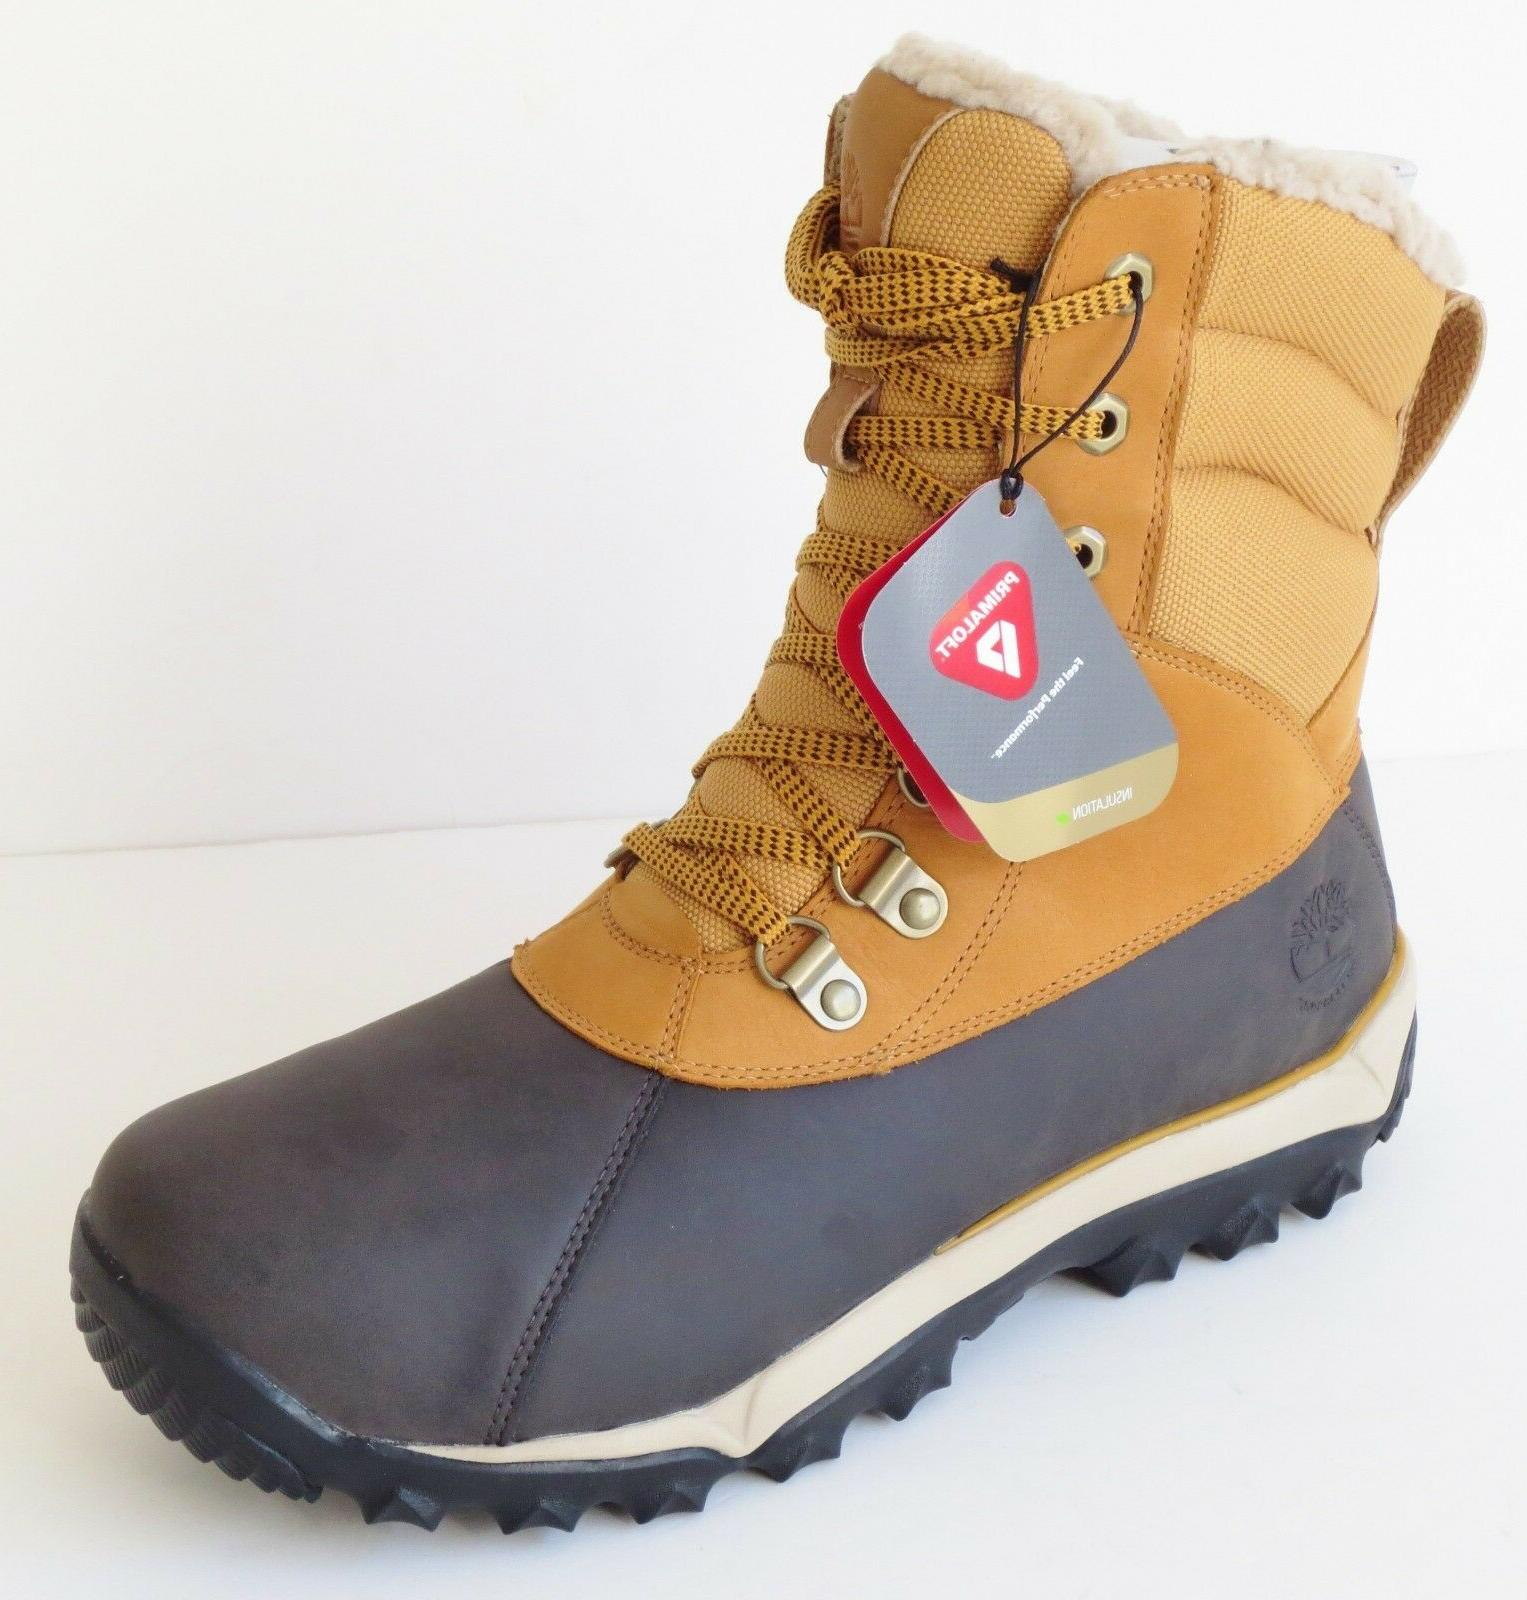 Timberland Men's Waterproof Boots Wheat Style A1GY1